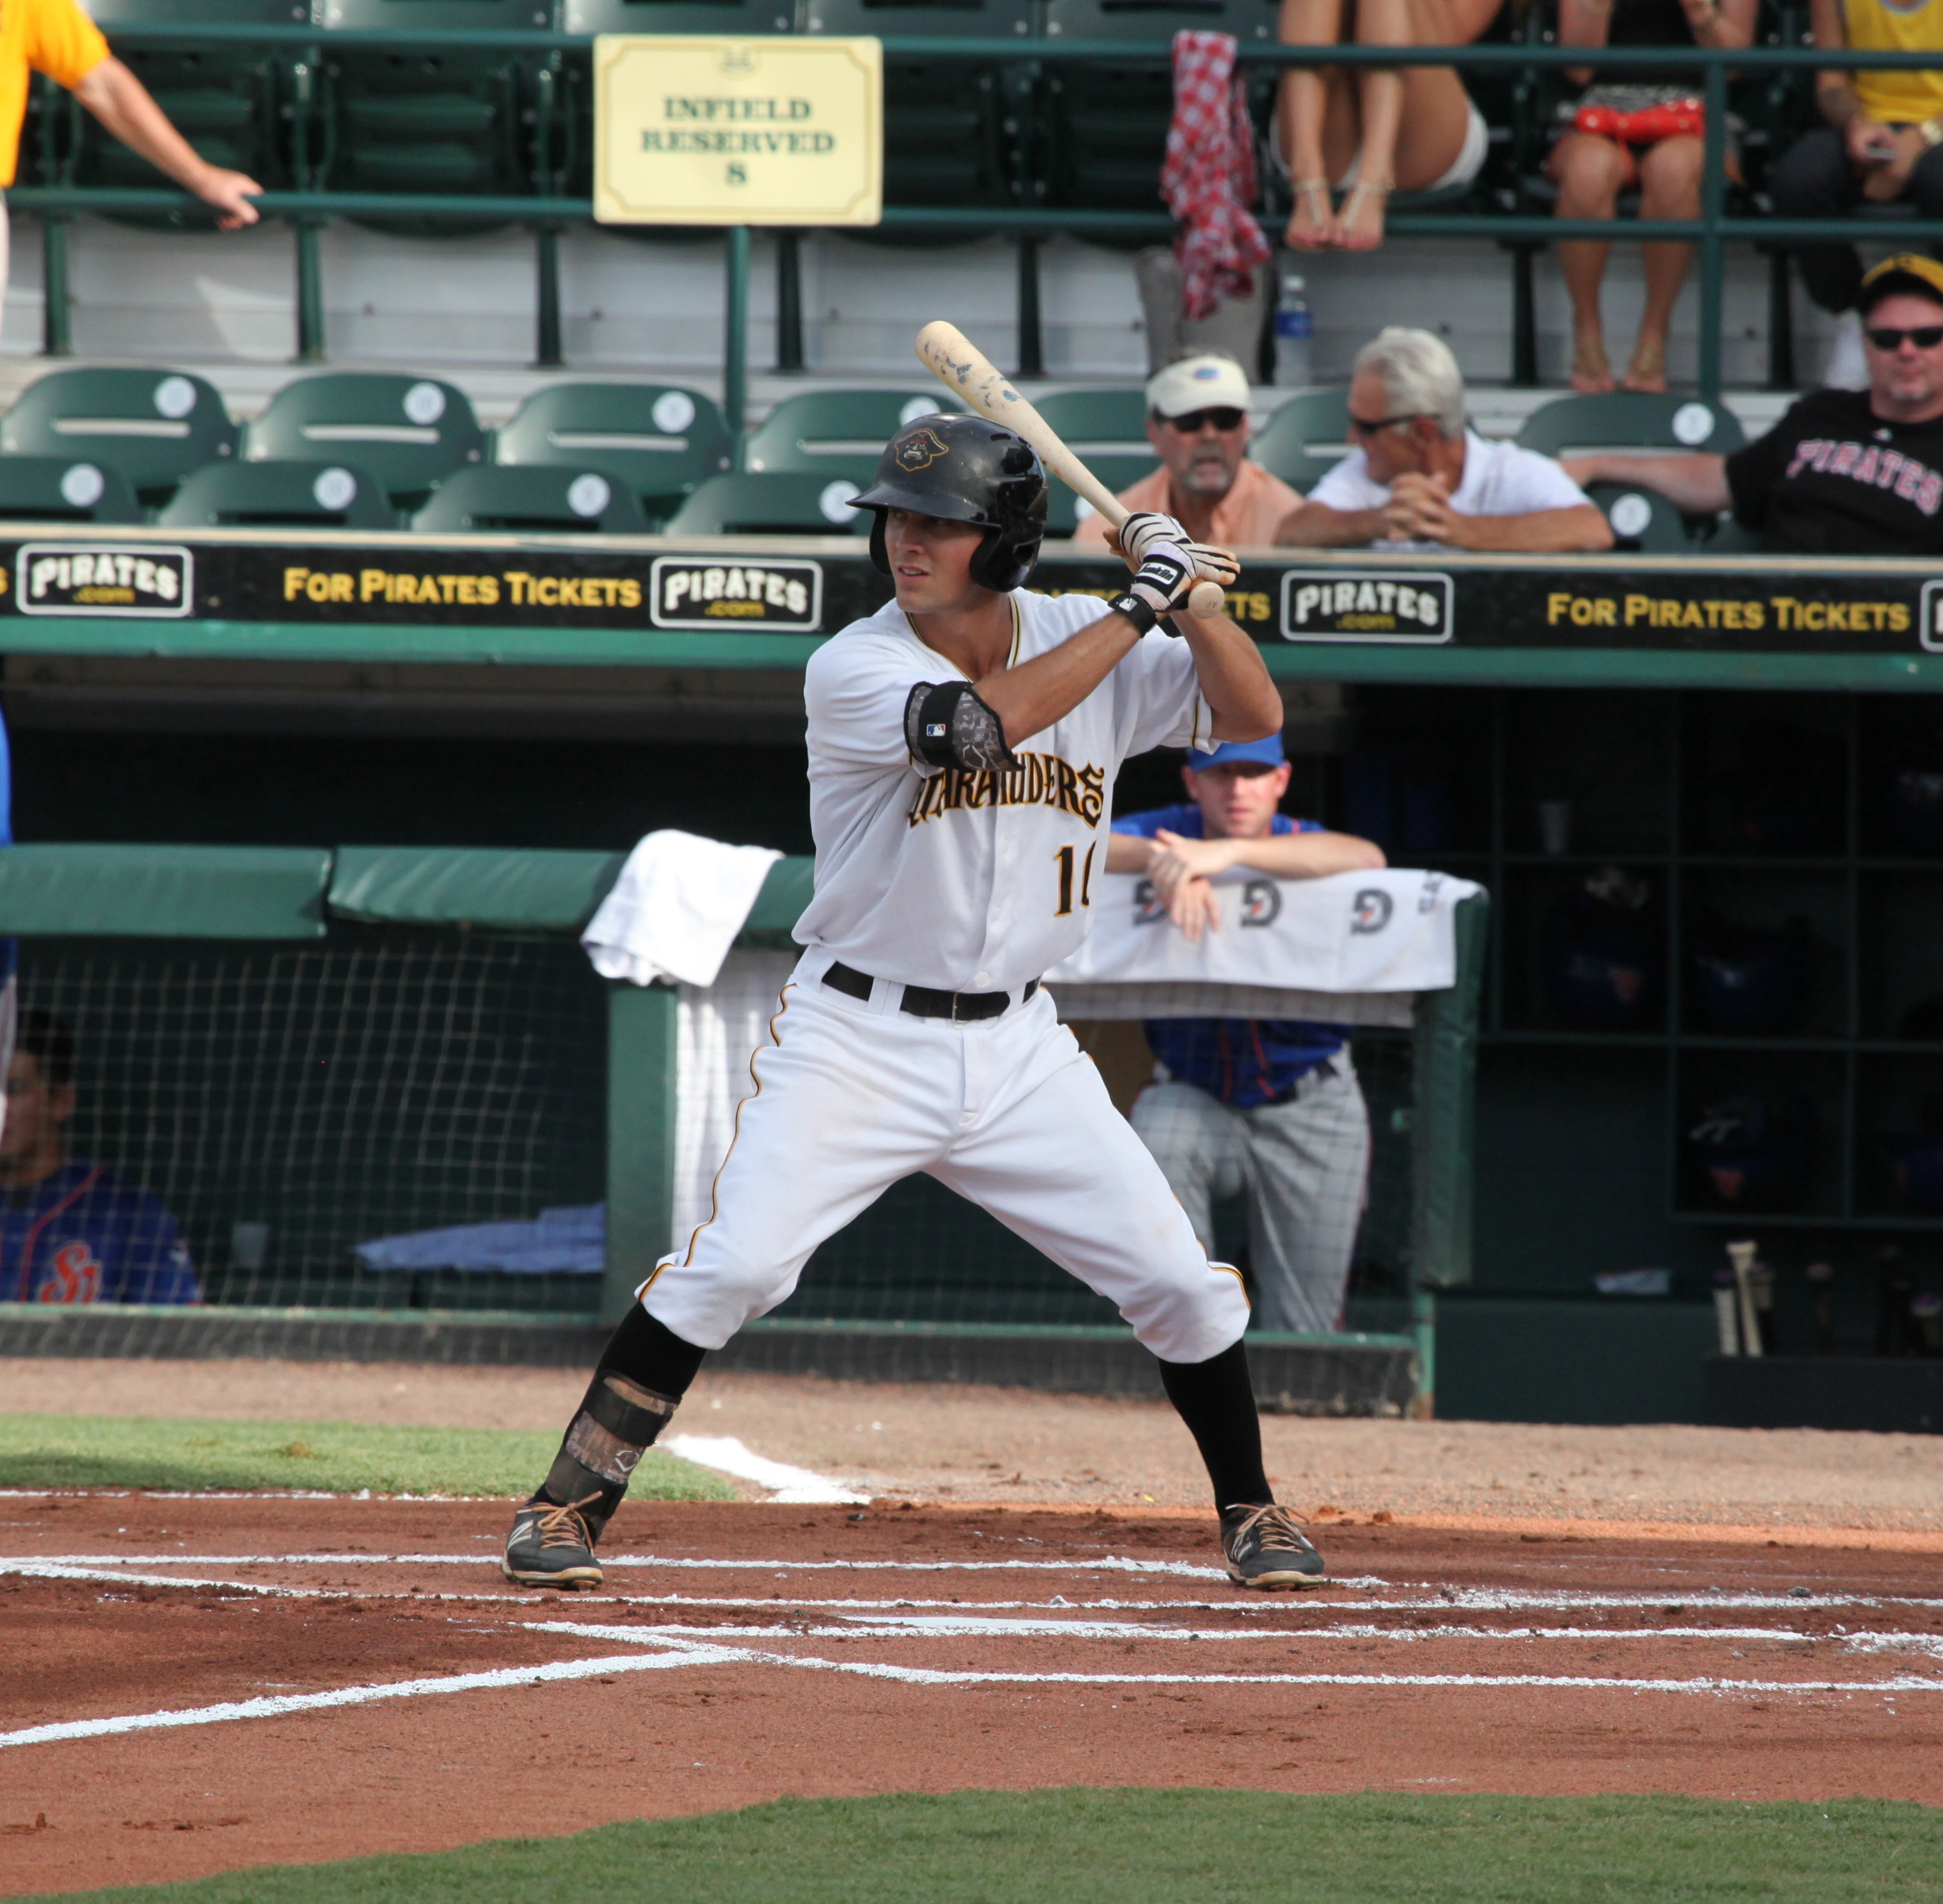 Prospect Watch: Adam Frazier Breaks Long Homerless Drought, Joely Rodriguez Pitches Great in Relief